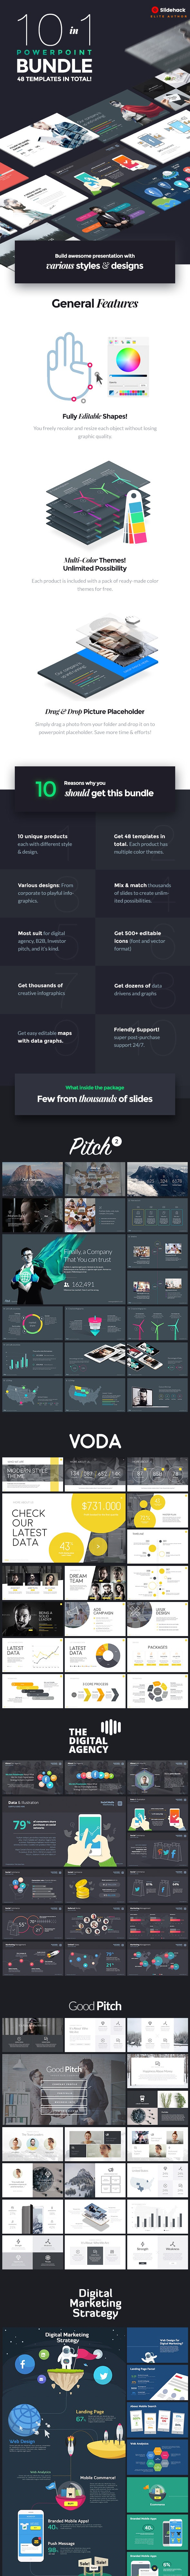 10 in 1 - Pitch Powerpoint Bundle - PowerPoint Templates Presentation Templates